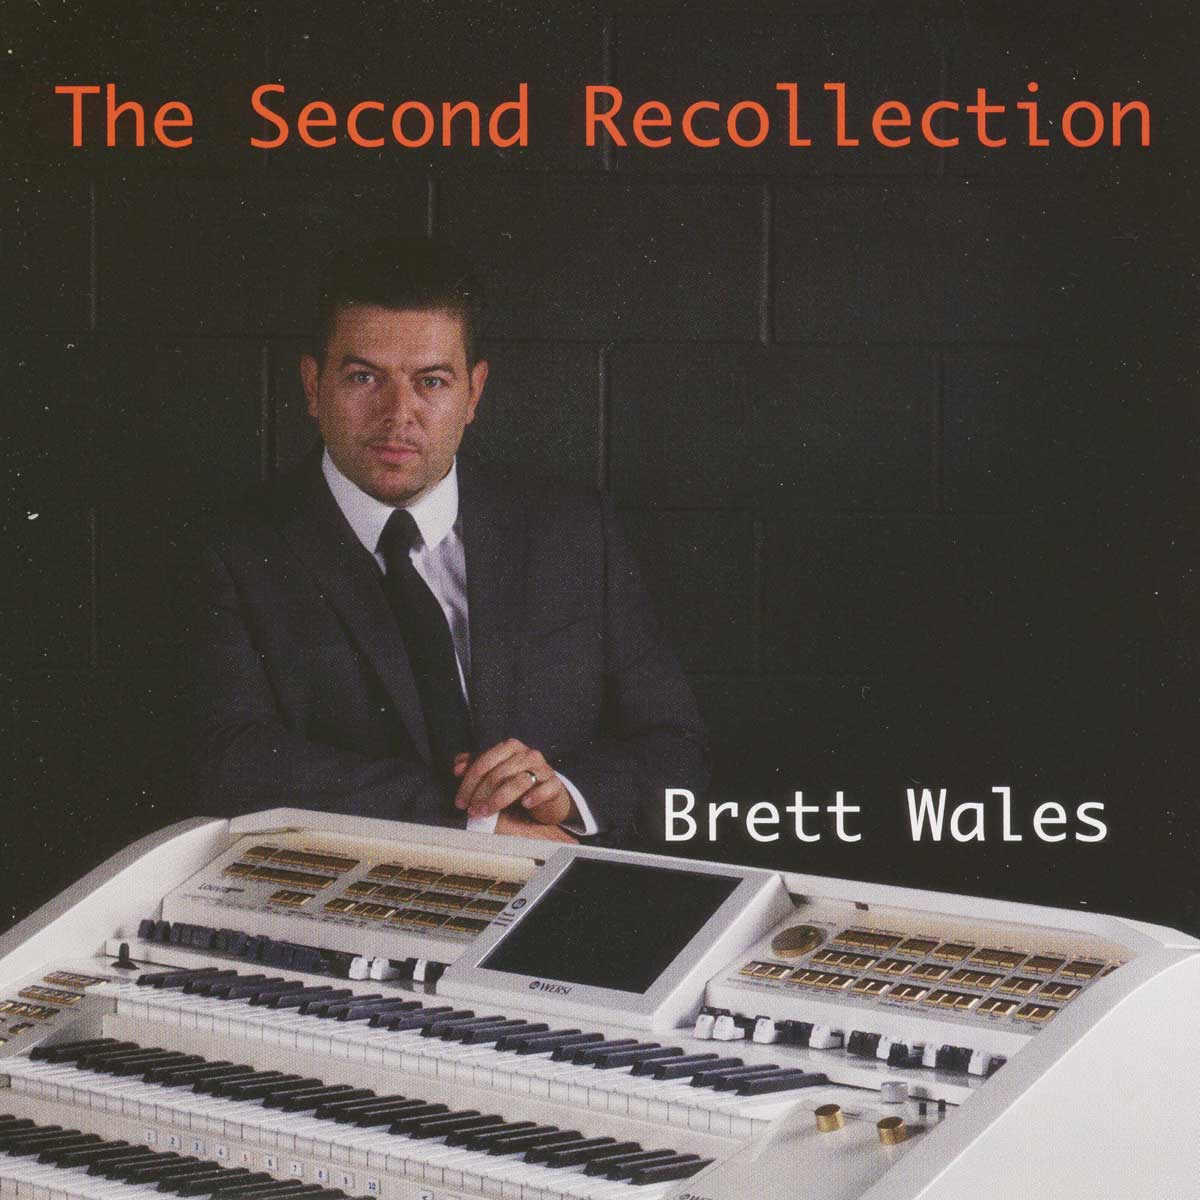 Brett Wales - The Second Recollection